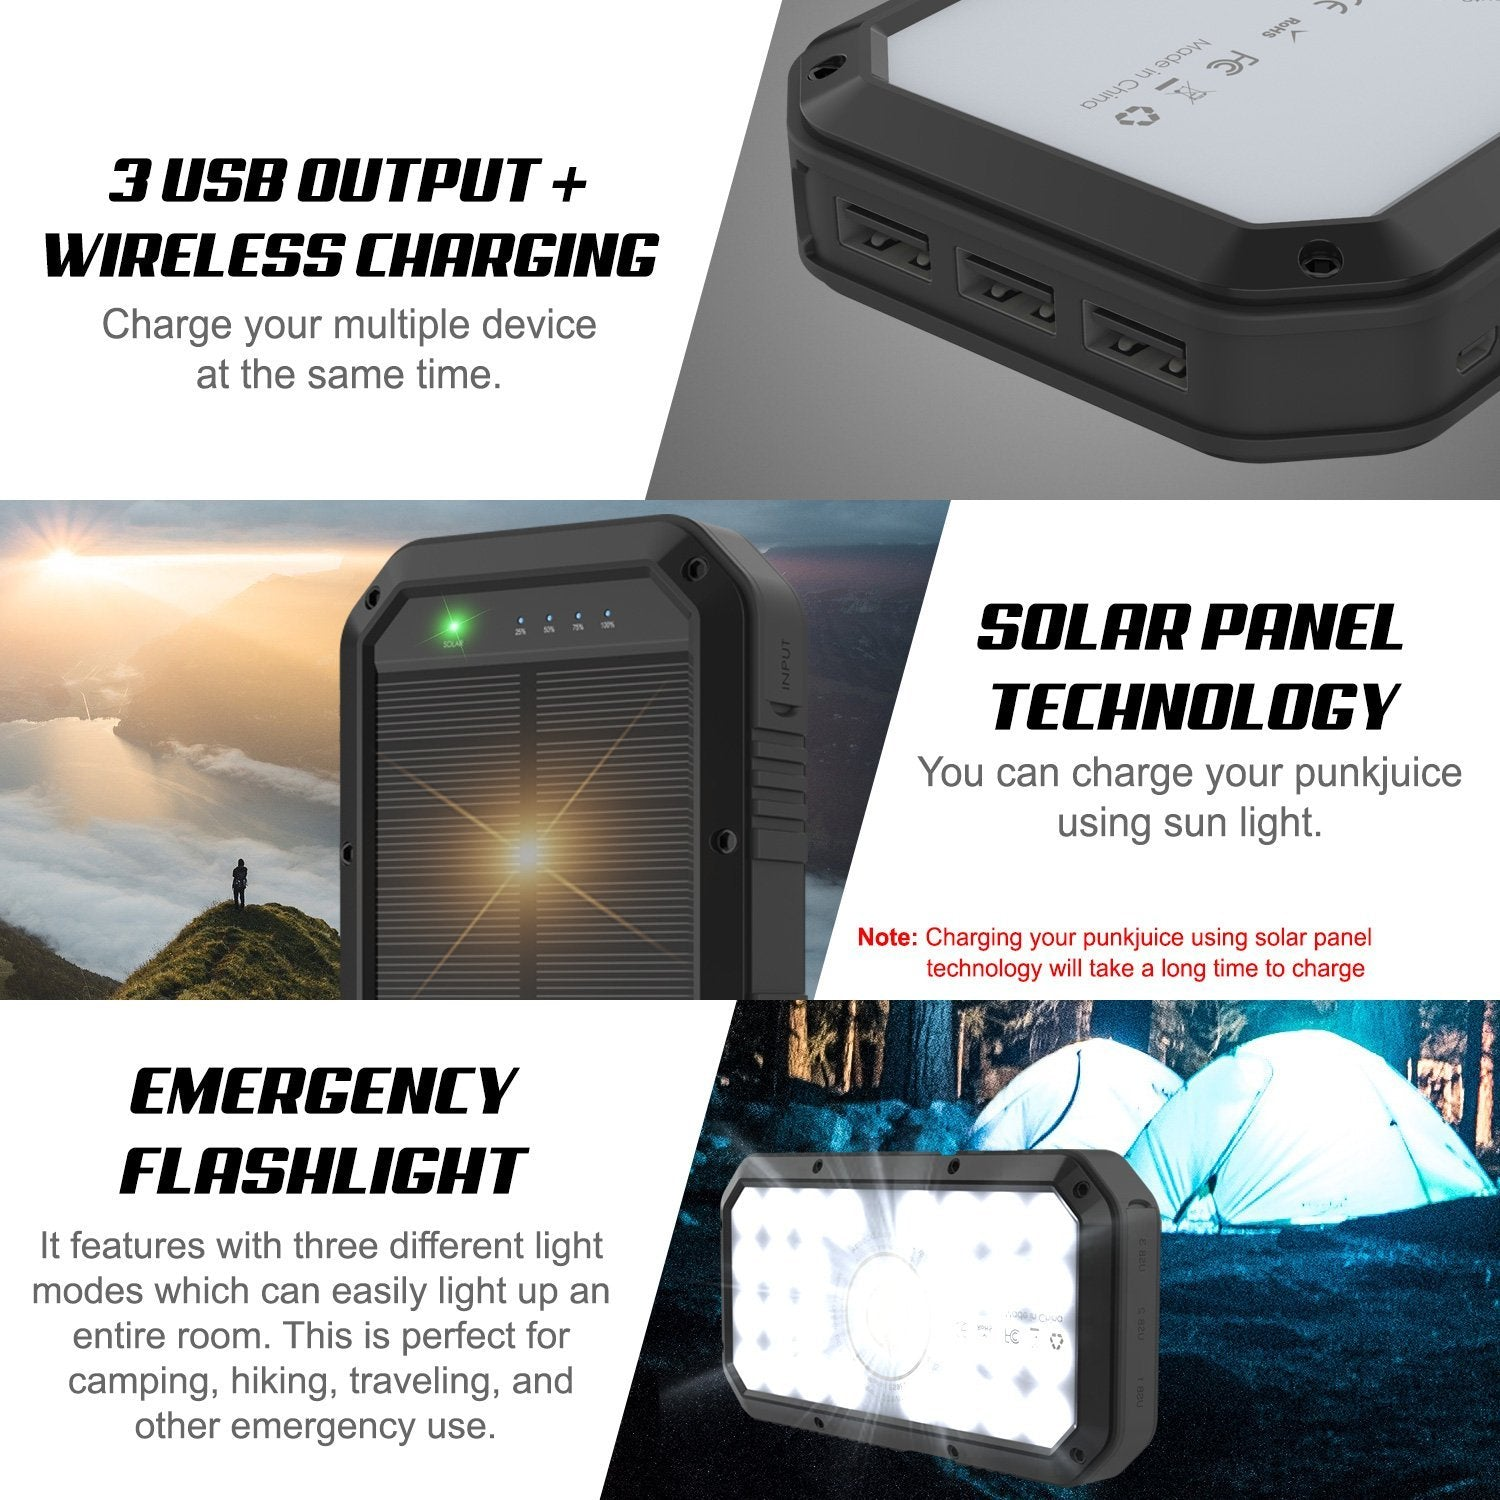 PunkCase Solar Wireless PowerBank 20000mah Battery Pack for iPhone X/XS/Max/XR / 11/10, iPad, Samsung Galaxy S10 / S9 and Many More [Black]